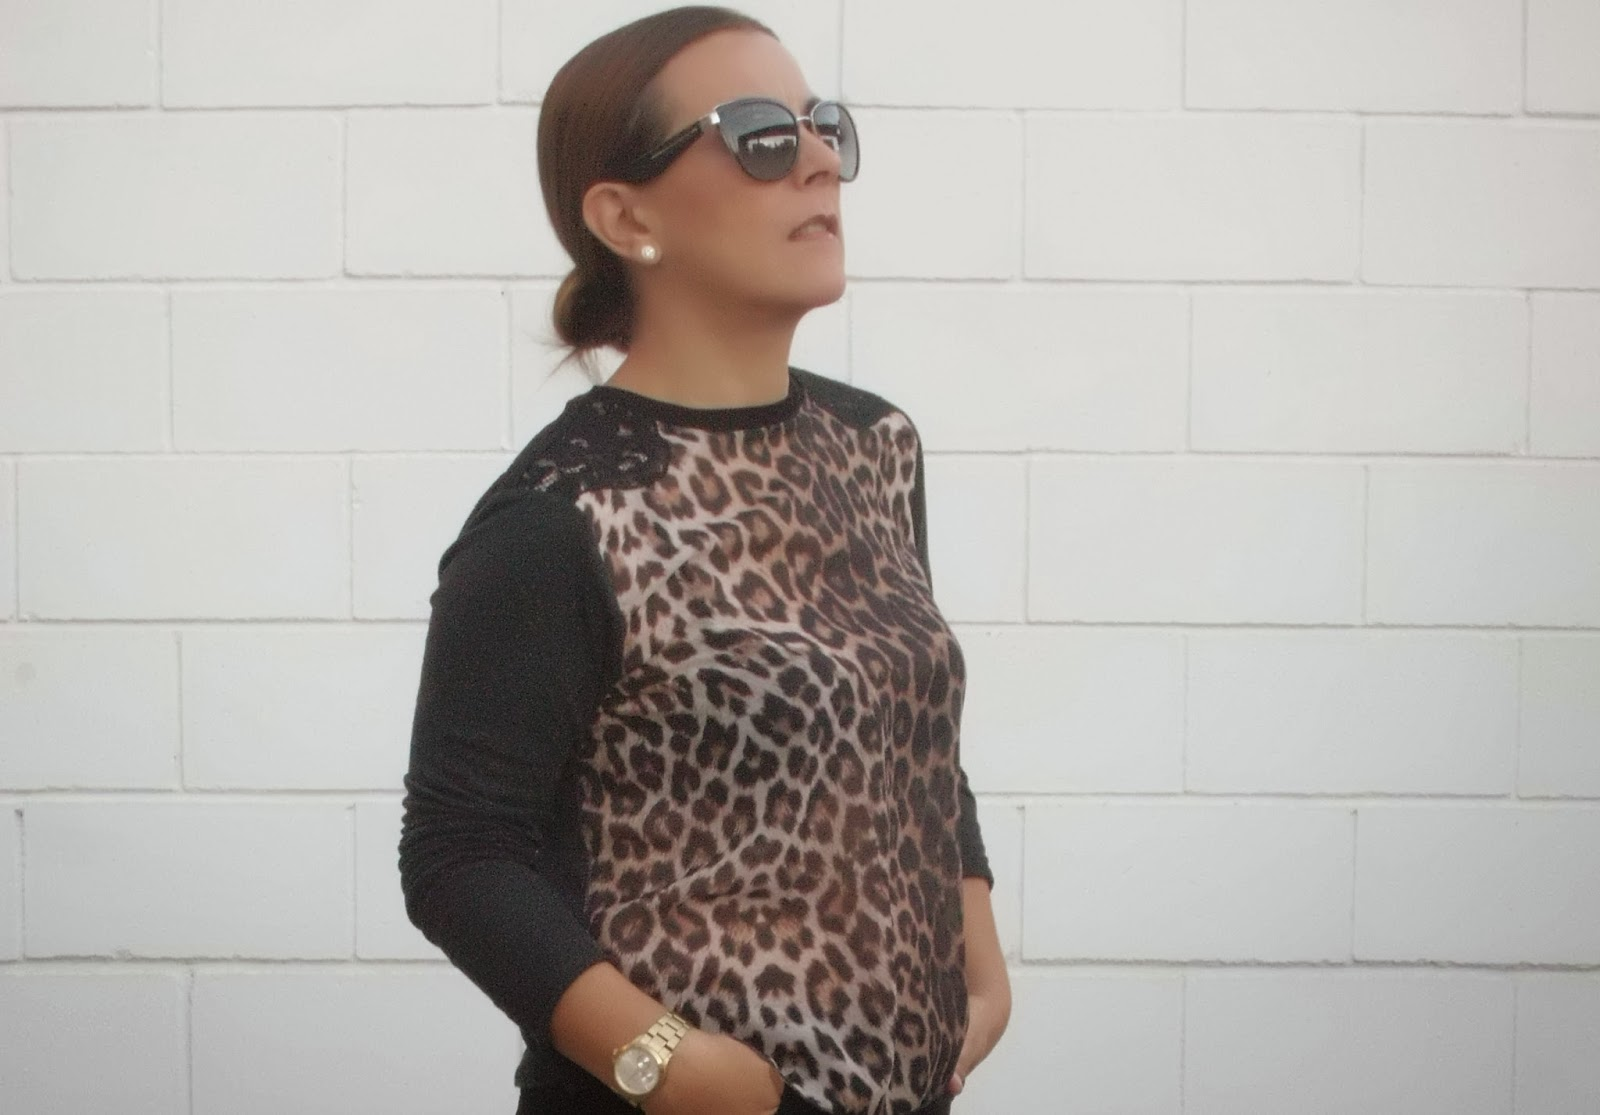 EL BLOG DE MARY REC: ANIMAL PRINT, TODO UN CLASICO